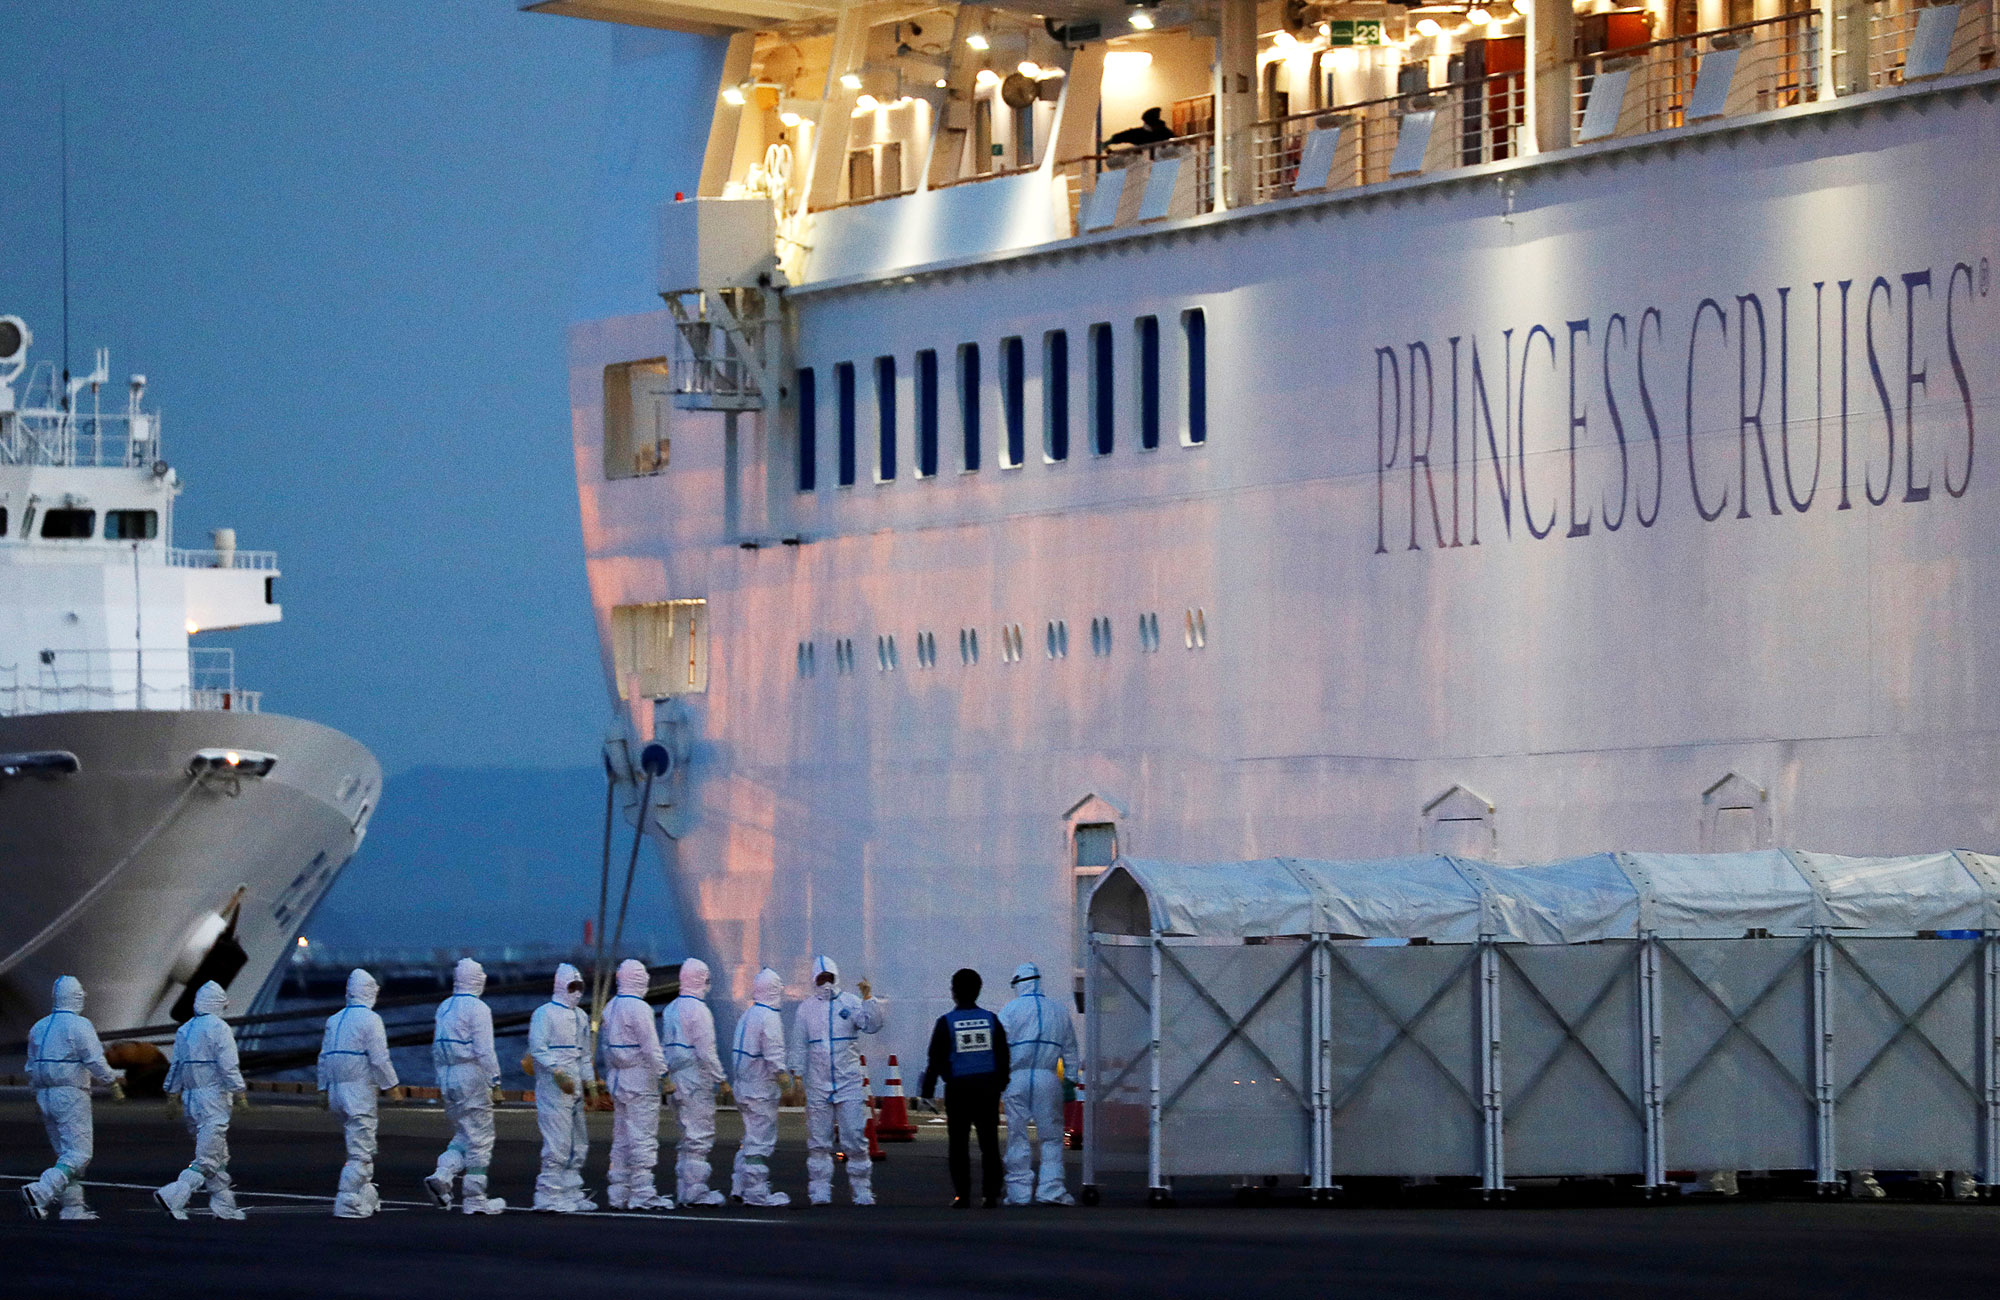 The Diamond Princess cruise ship in port, being boarded by a line of people in full protective gear.